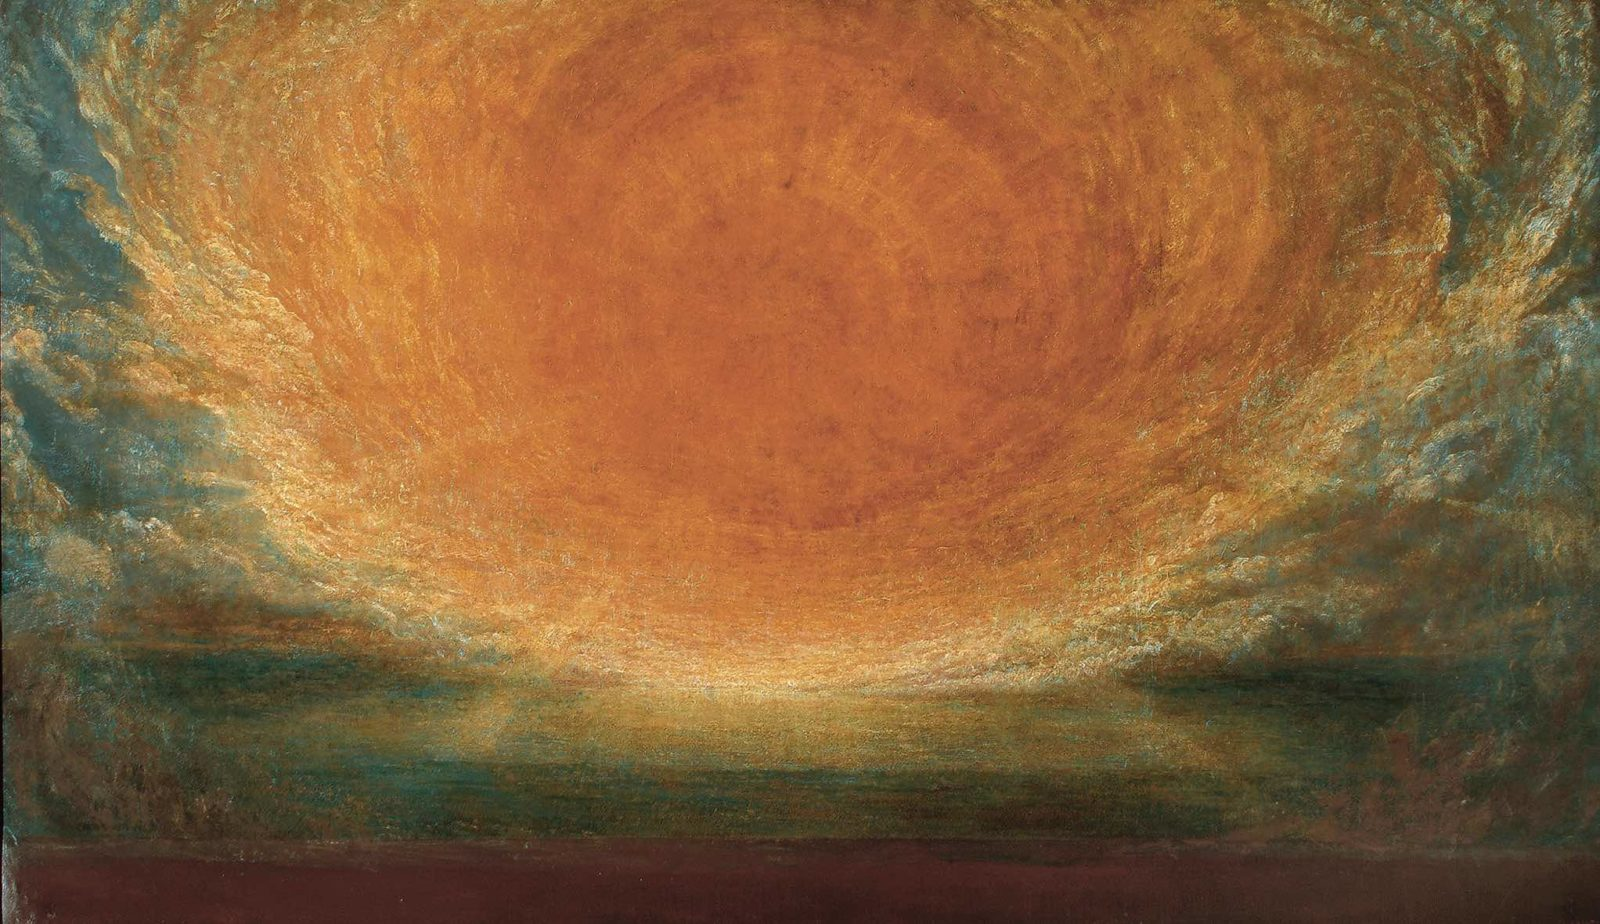 George Frederic Watts After the Deluge fondation de l'Hermitage